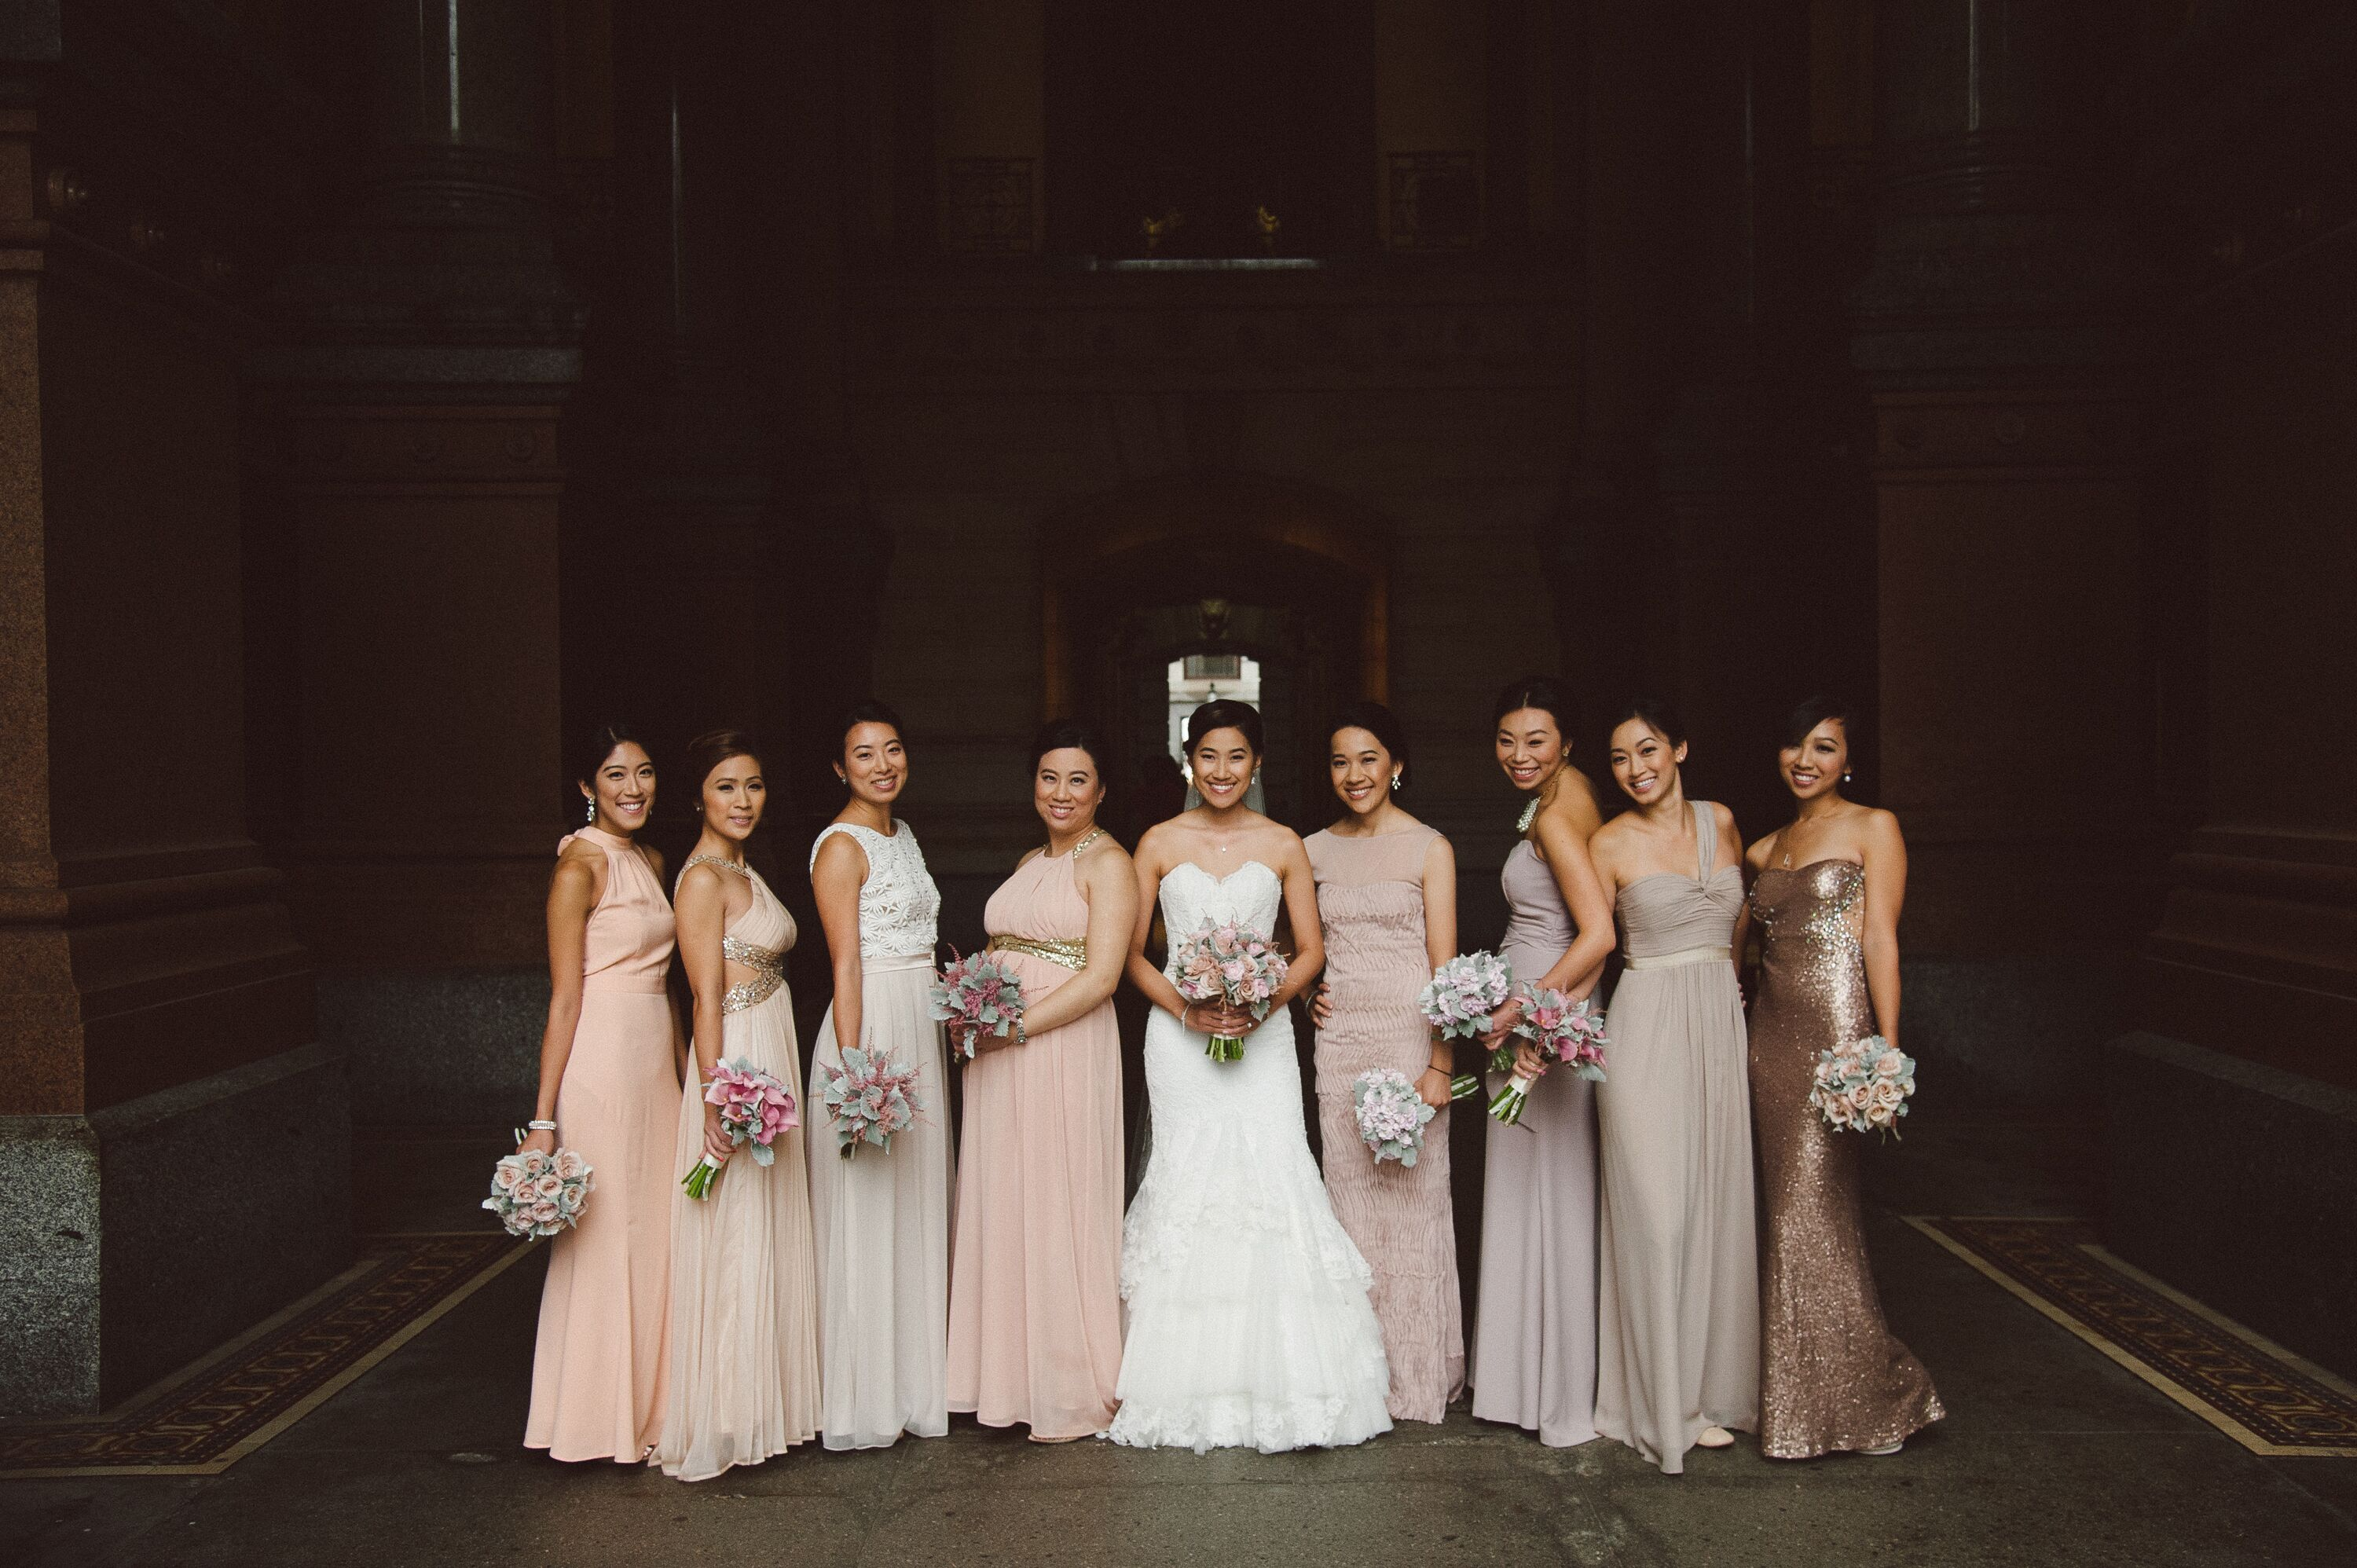 A Sophisticated, Classy Wedding at Loews Philadelphia Hotel in ...